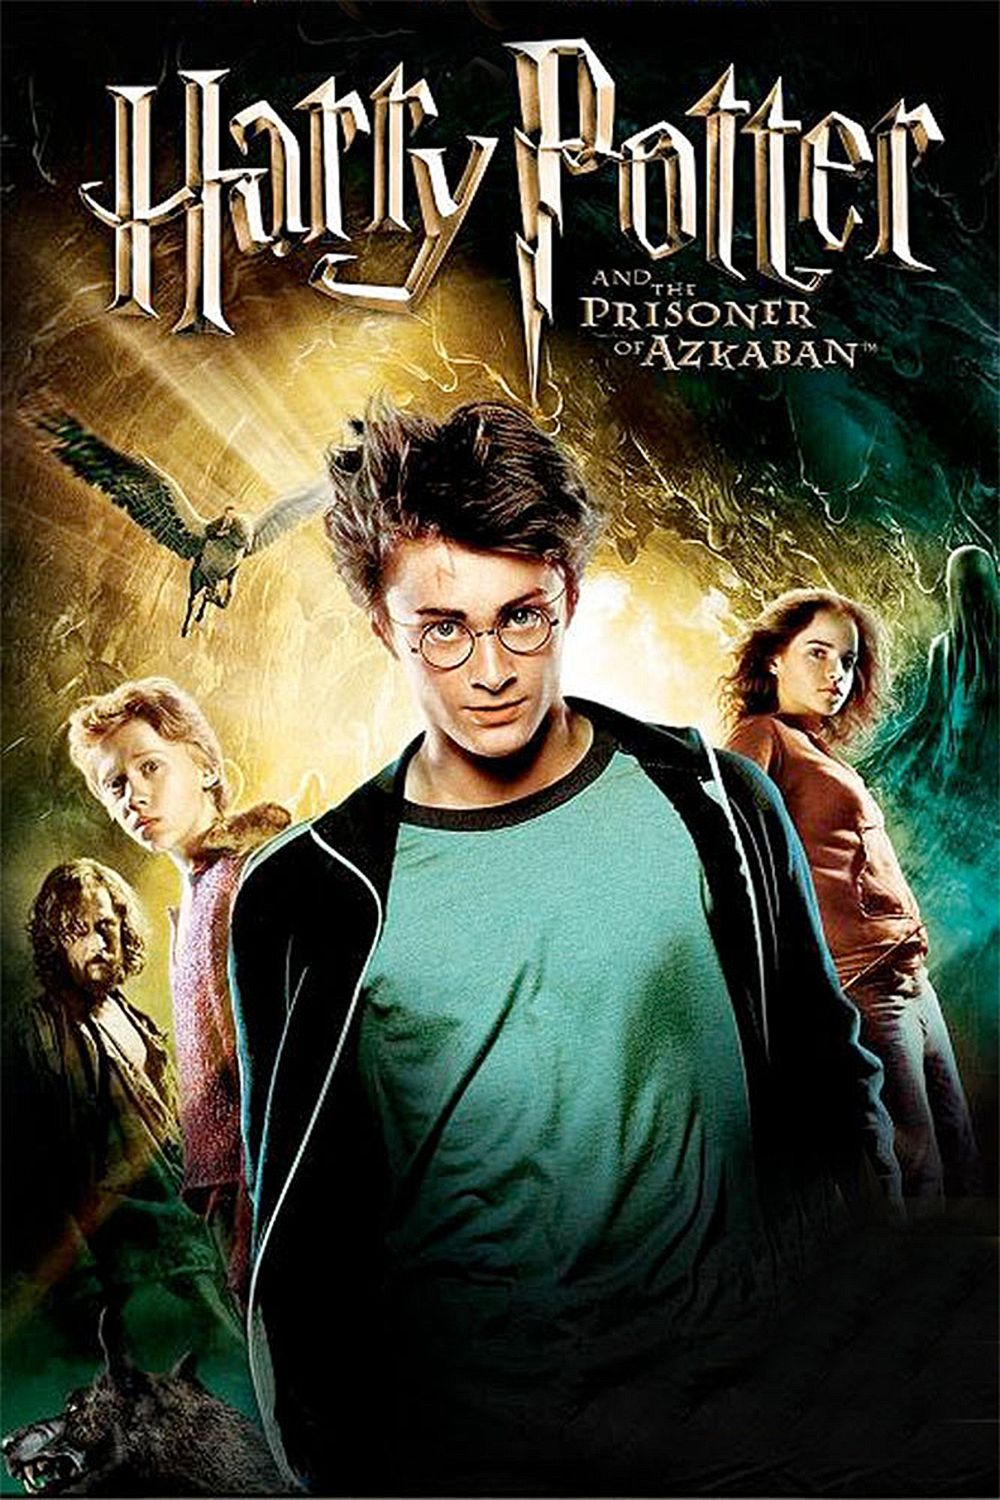 Image result for harry potter and the prisoner of azkaban movie